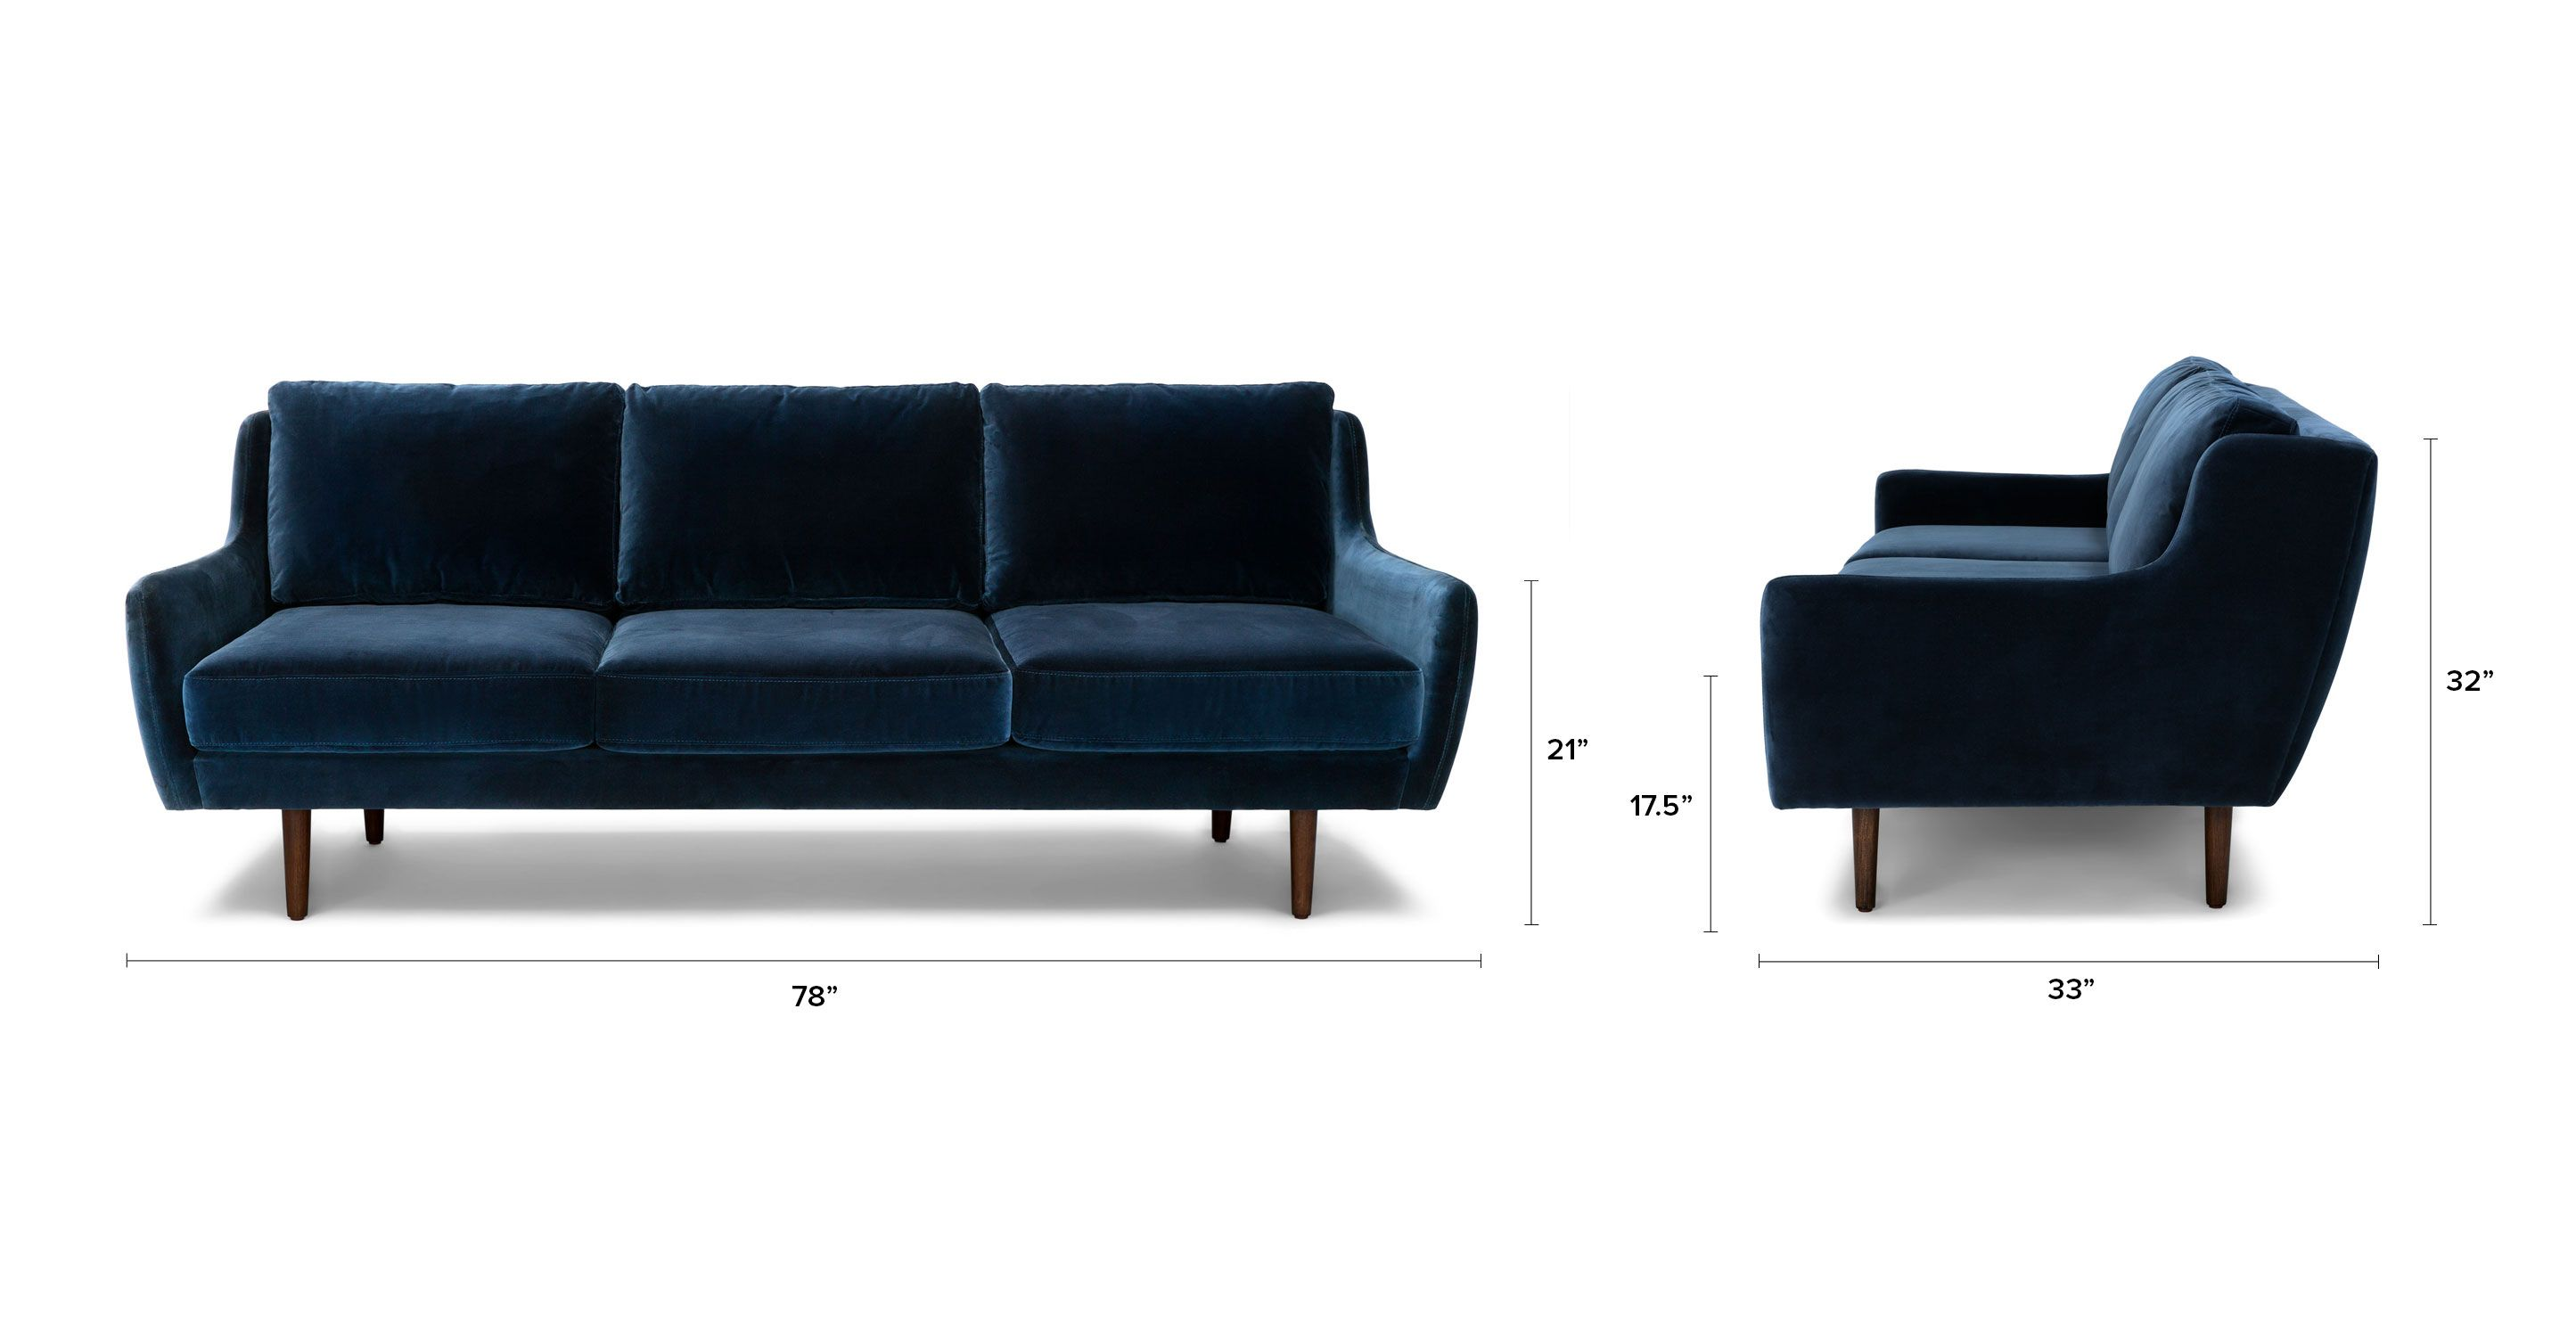 Blue Velvet Sofa Walnut Wood Legs